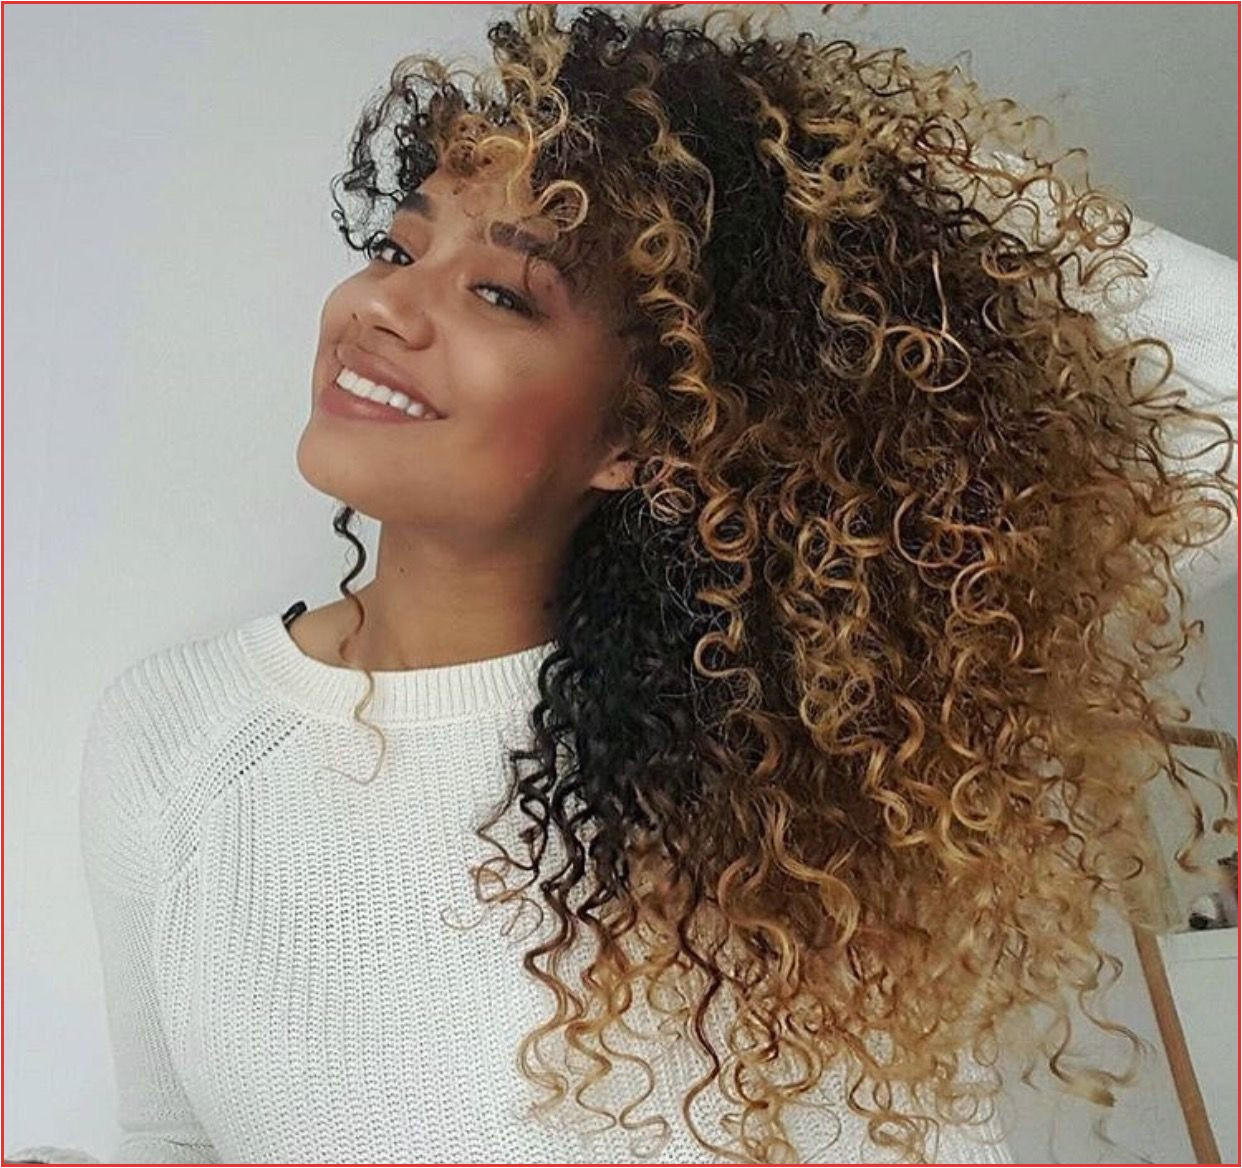 Curly Hair Dyed Curly Hair Goals Black Hairstyles Pinterest Curly Hair Dyed Hairstyle